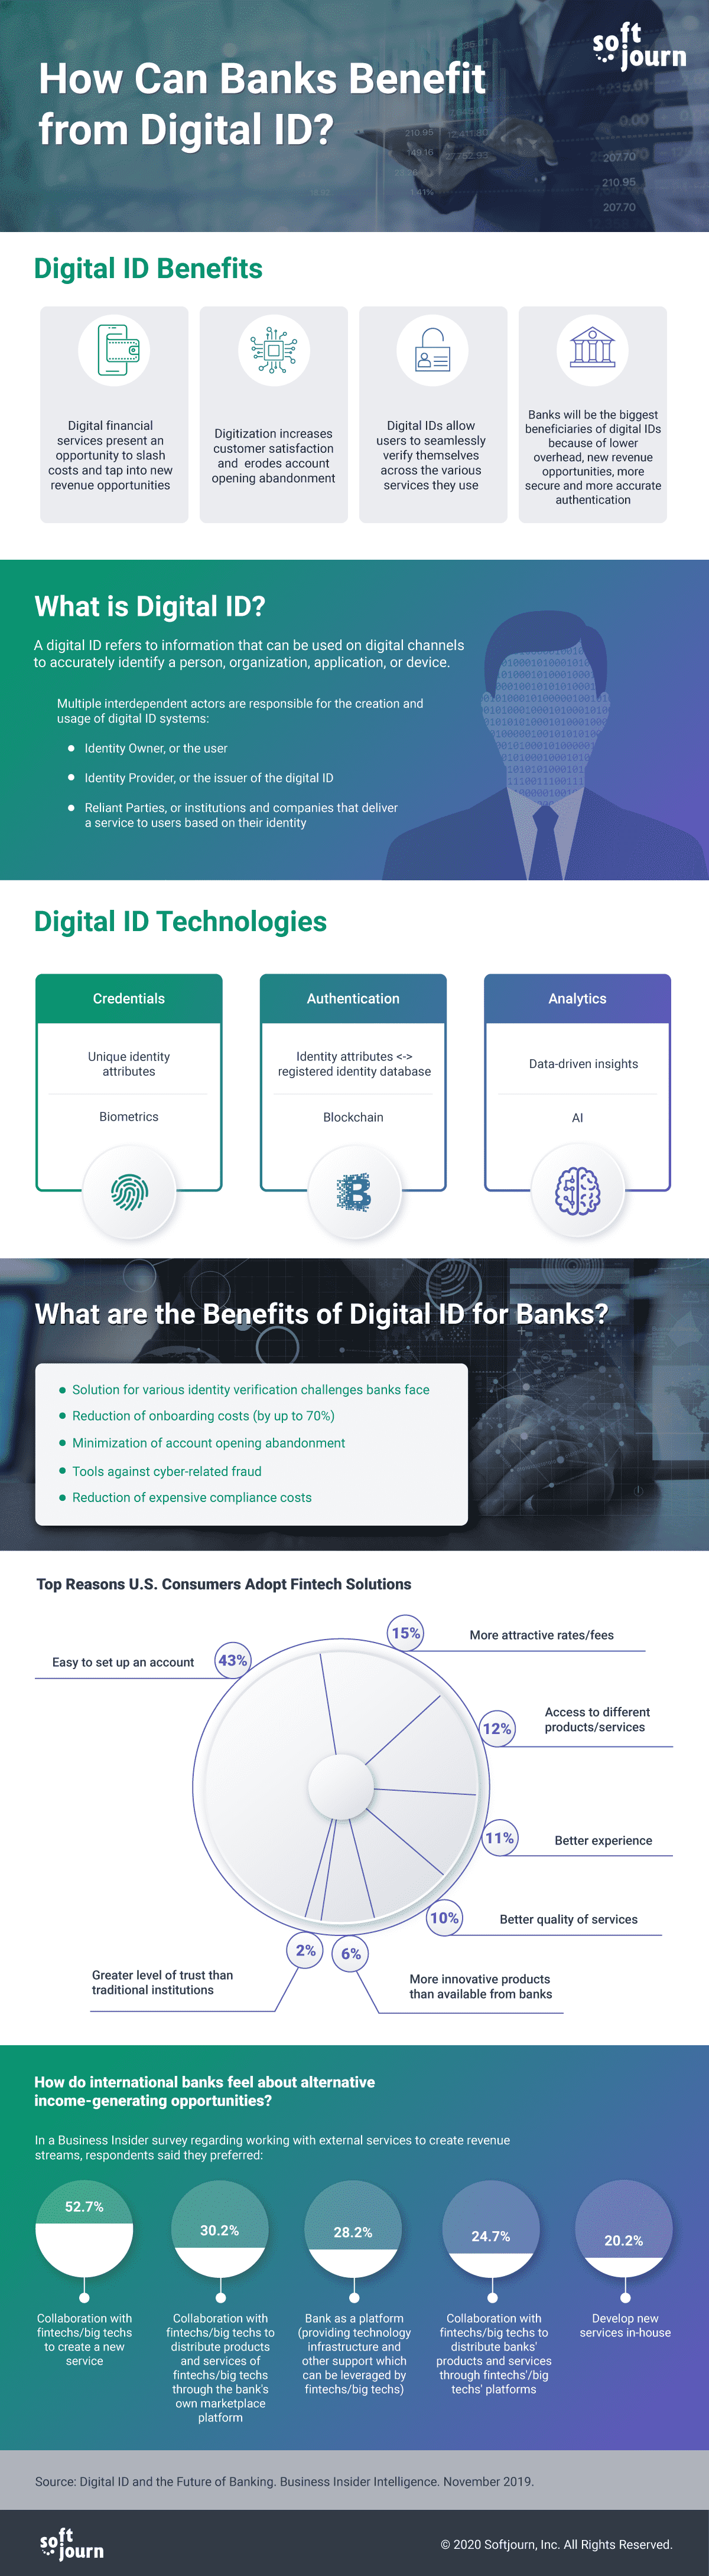 How Can Banks Benefit from Digital ID Infograhics